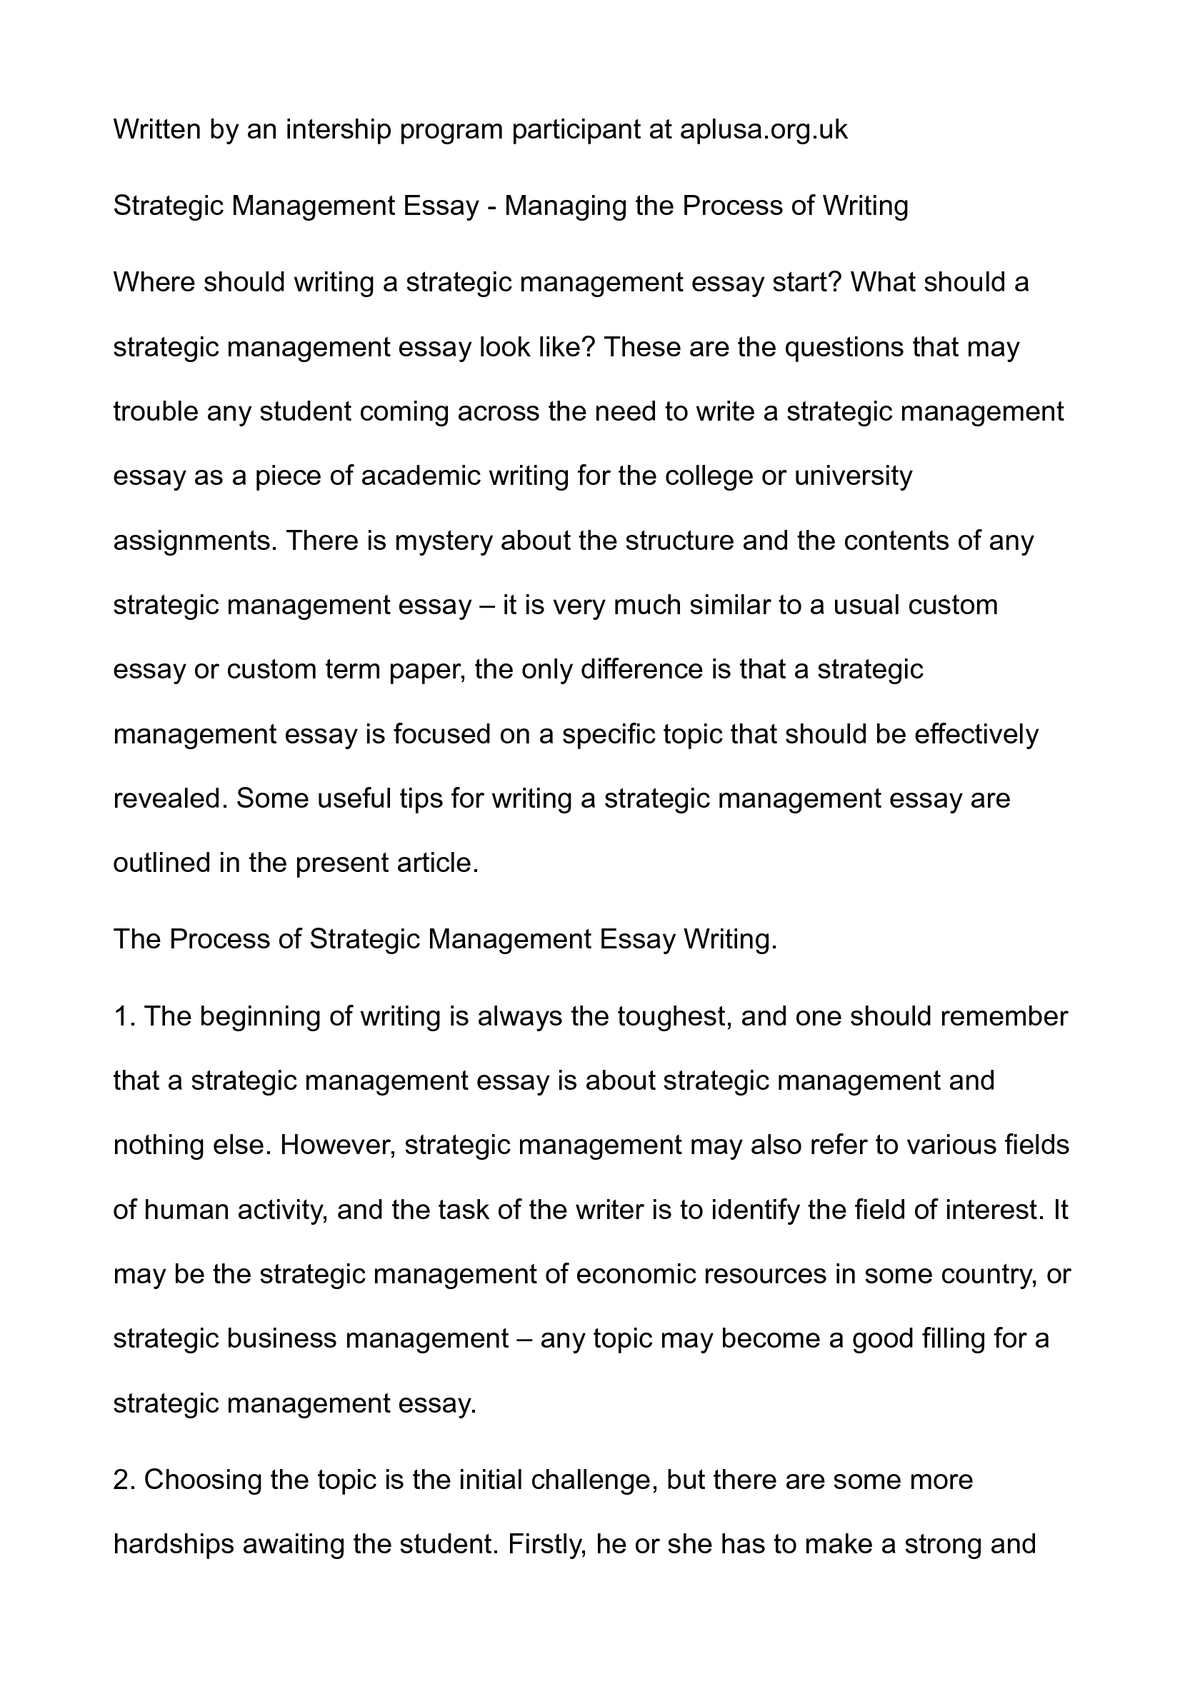 Expository Essay Types  Anti Gun Control Essays also Rome Essay Calamo  Strategic Management Essay  Managing The Process  How To Write An Expository Essay Introduction